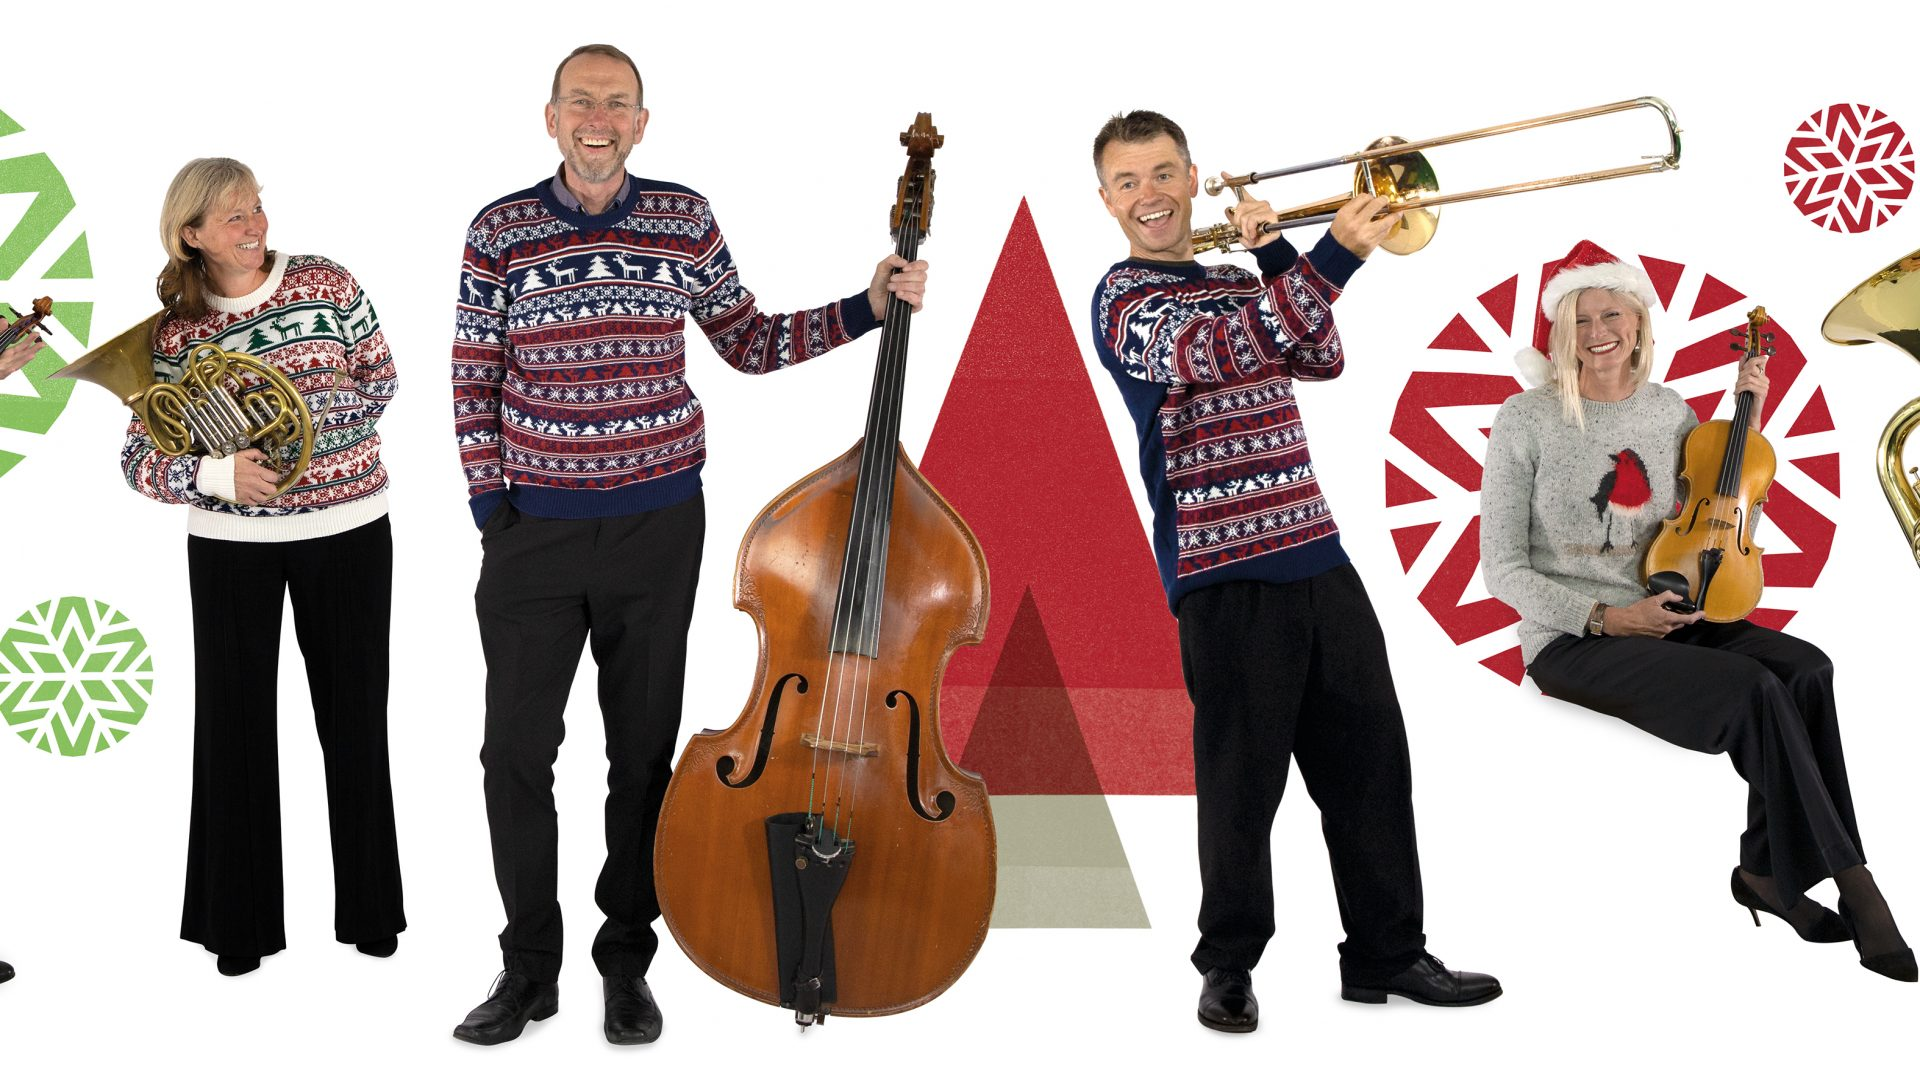 BSO players in Christmas jumpers